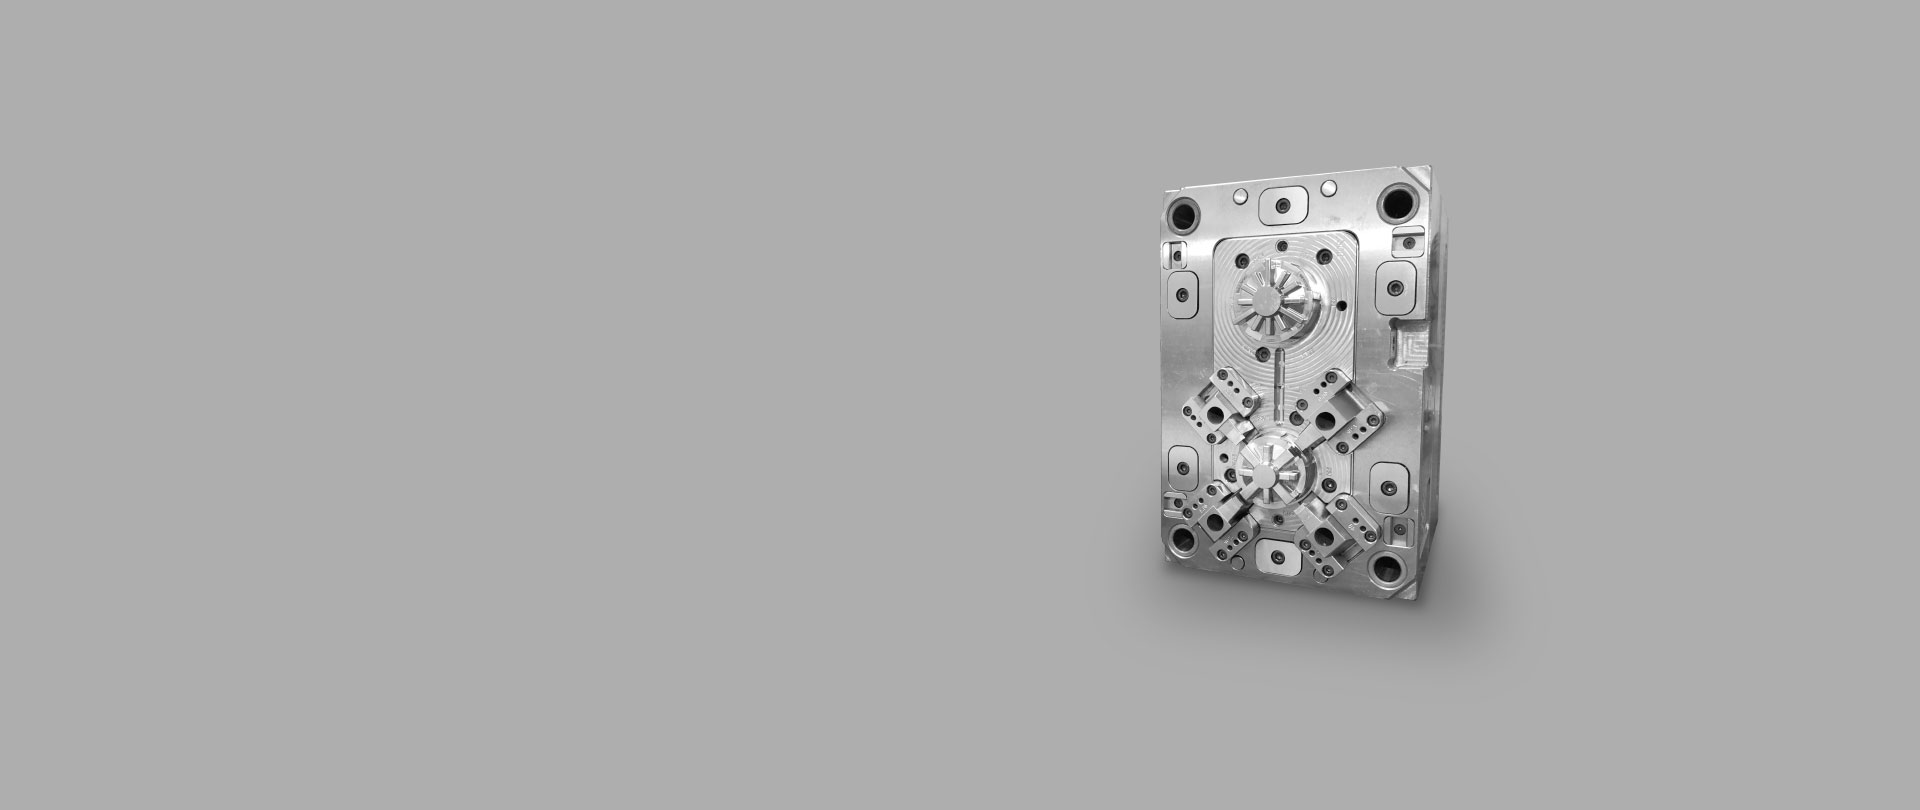 CUTTING EDGE SOLUTION FOR THE MOLD INDUSTRY